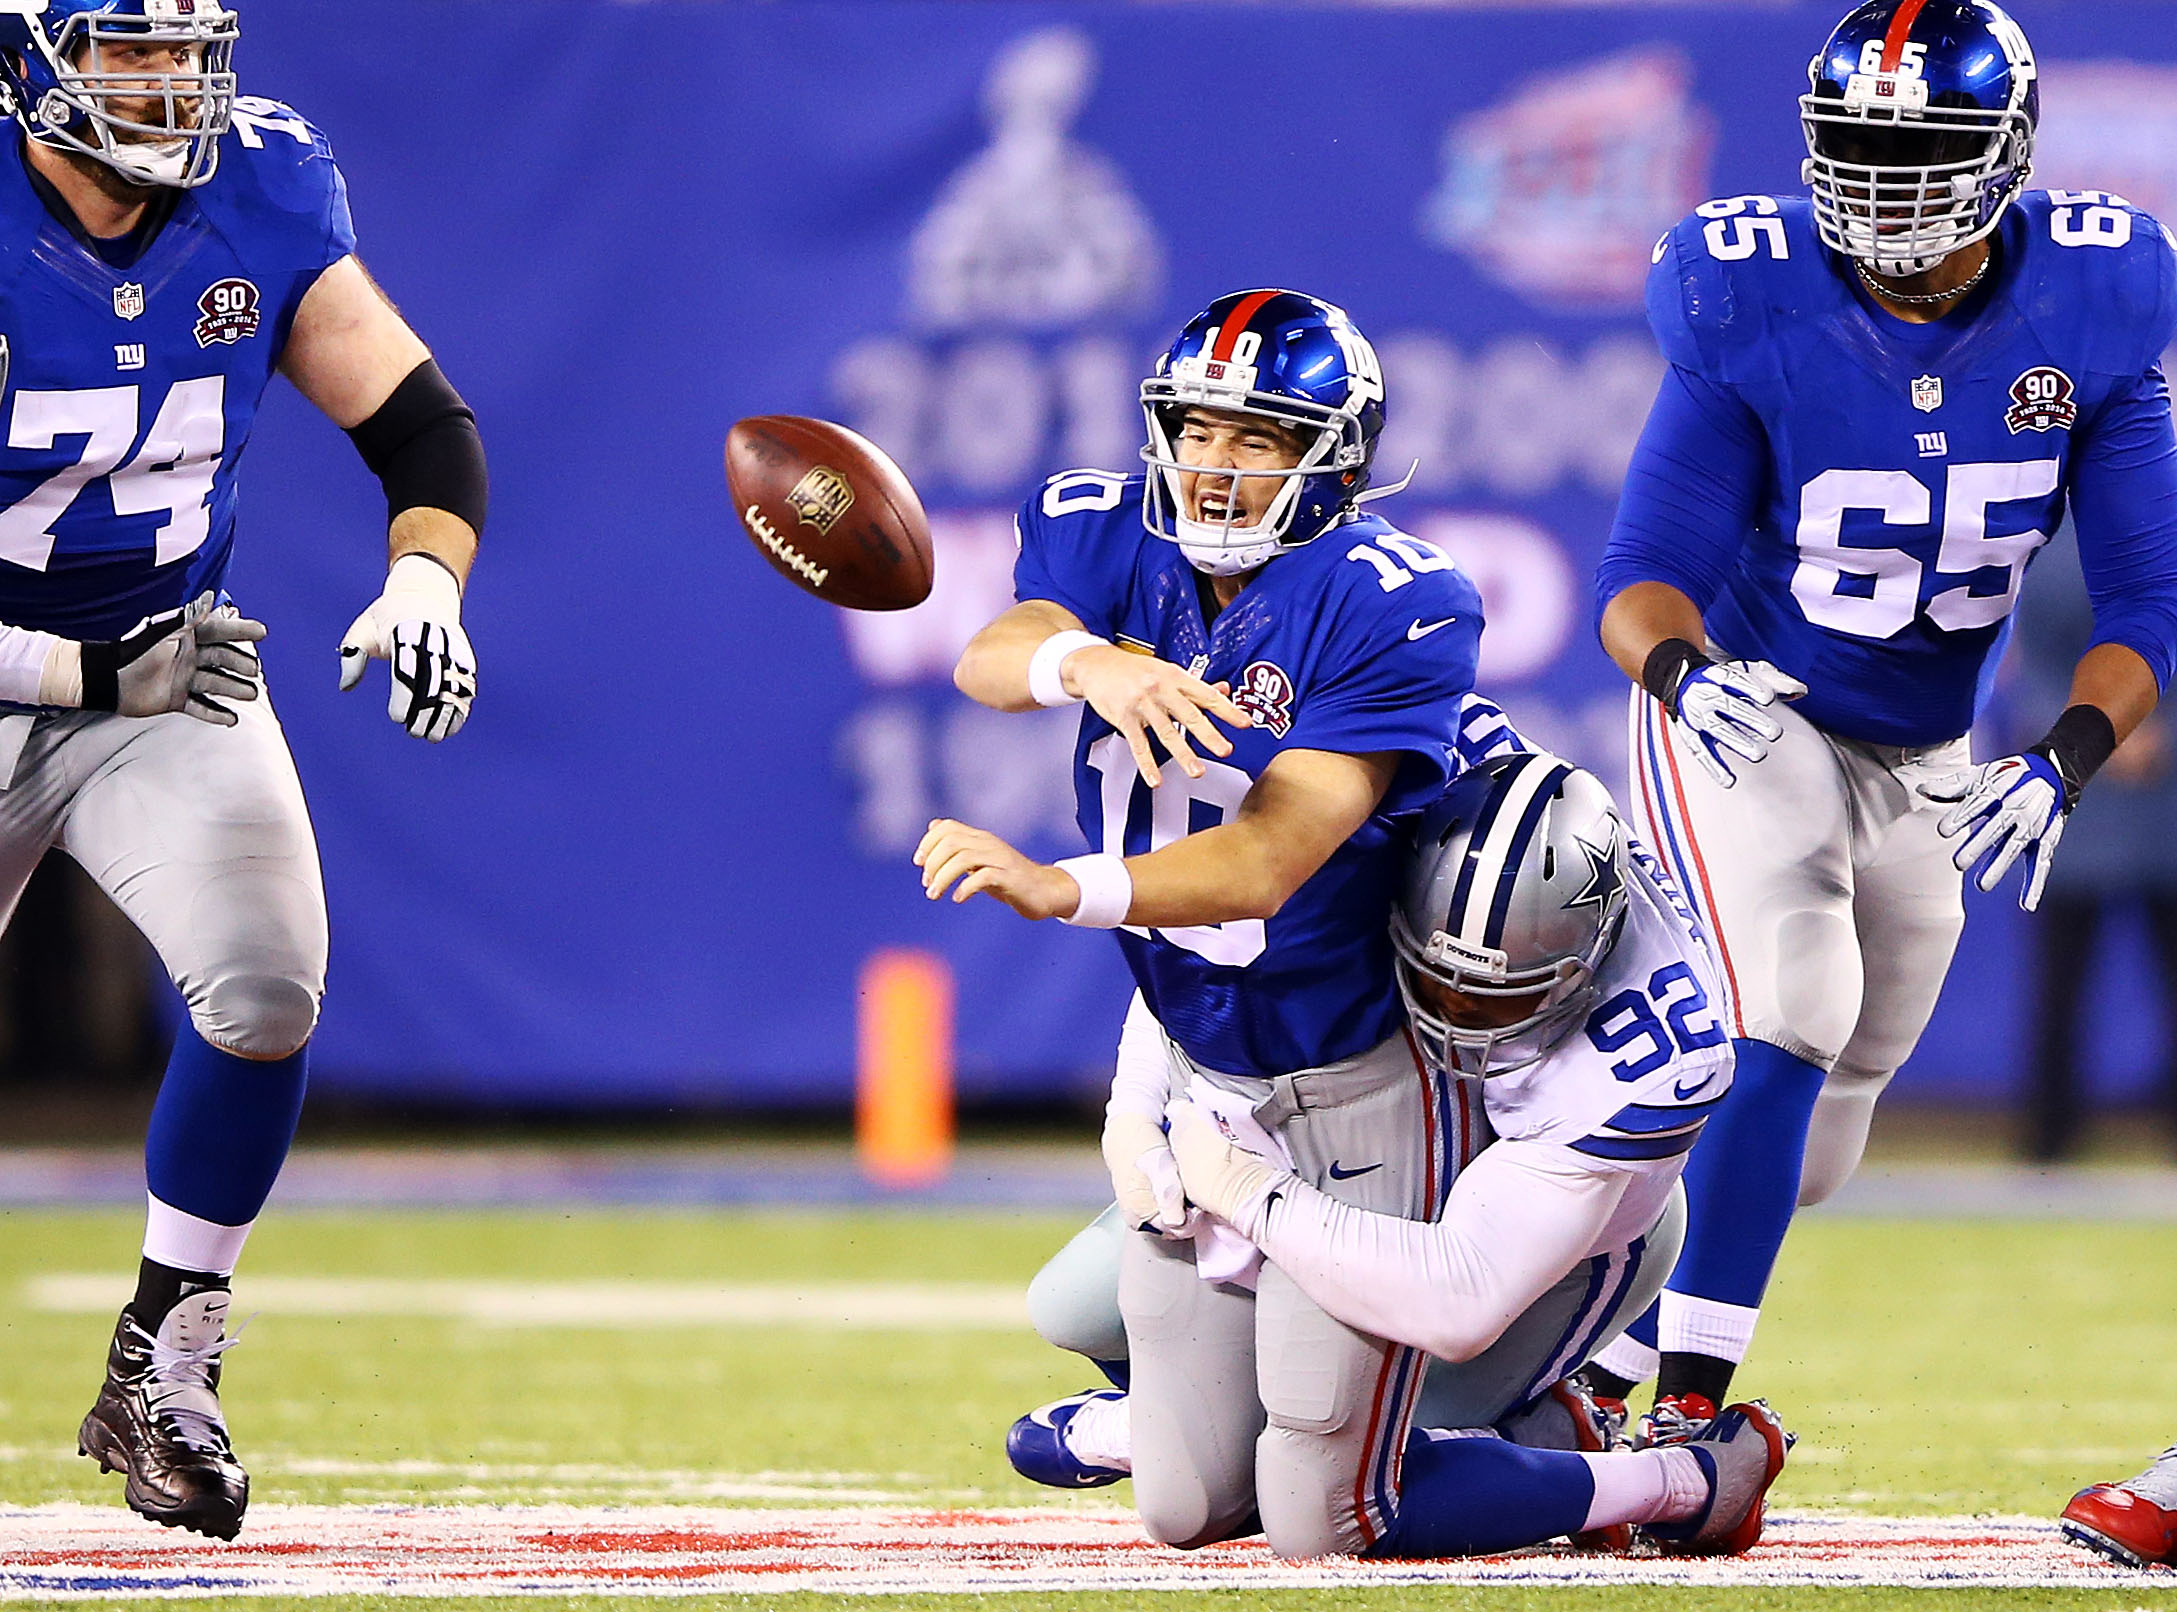 Eli Manning is sacked by Jerome Mincey in the second quarter